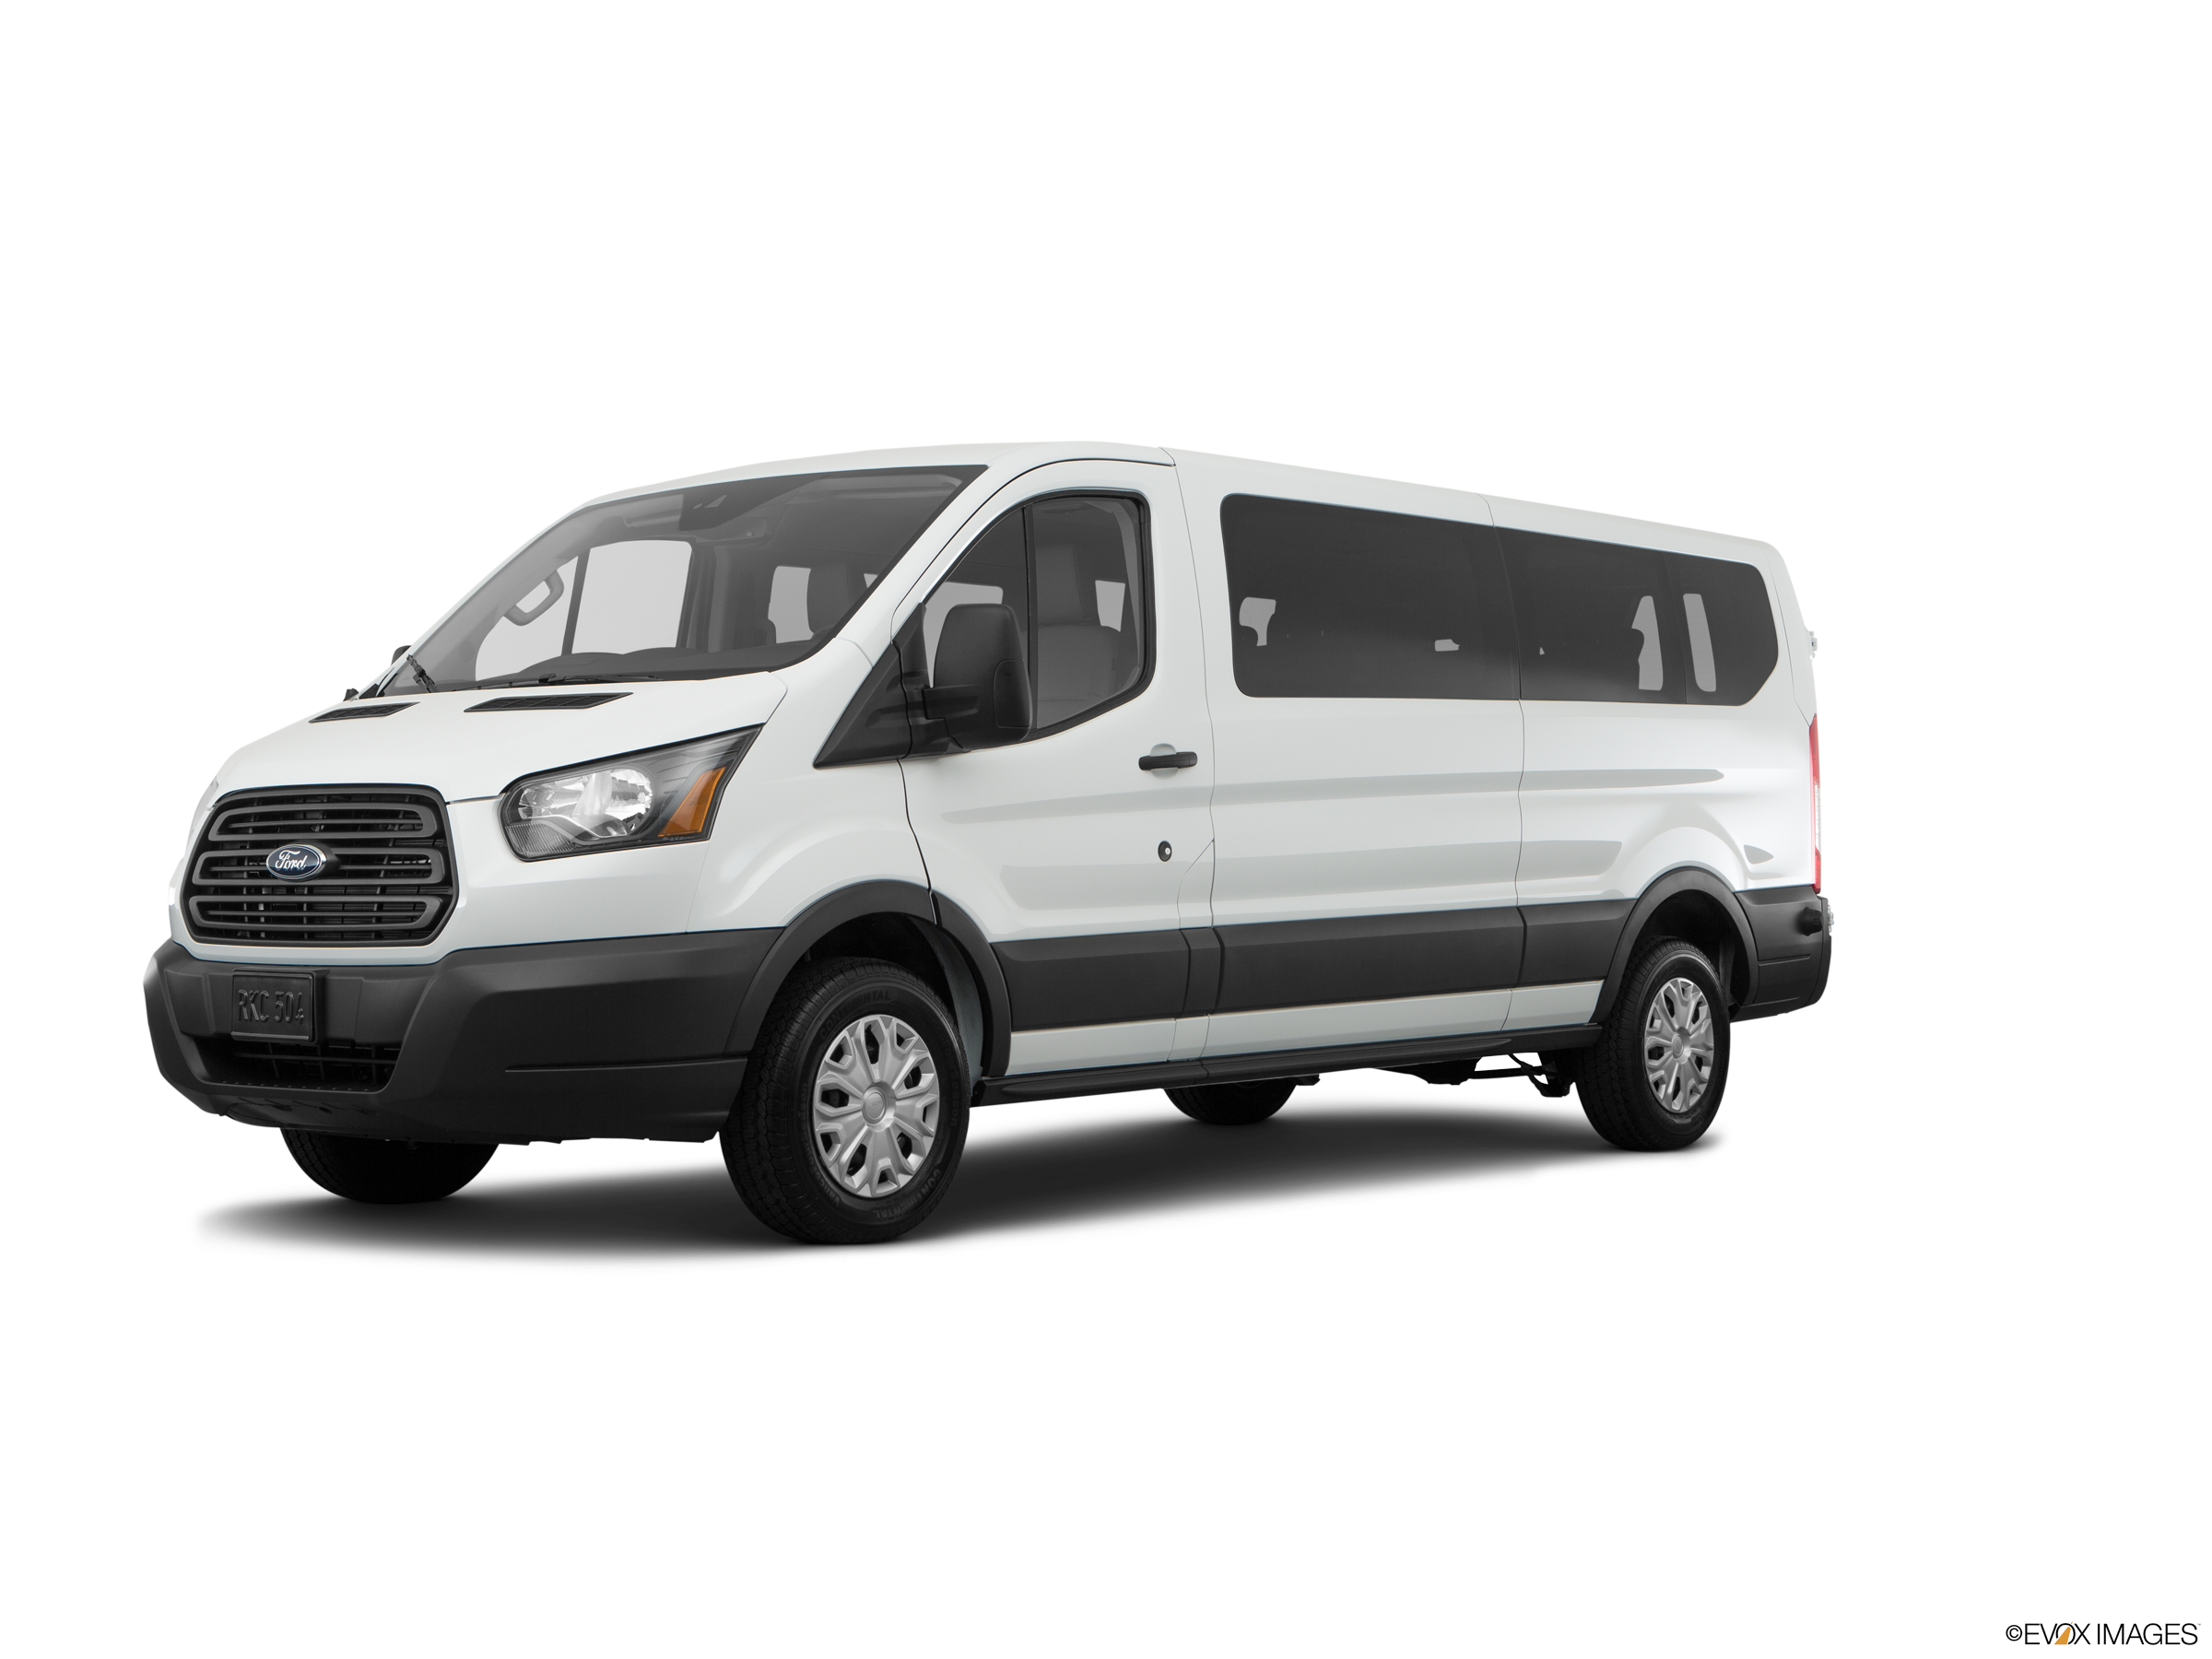 Best Safety Rated Van/Minivans of 2017 - 2017 Ford Transit 350 Wagon